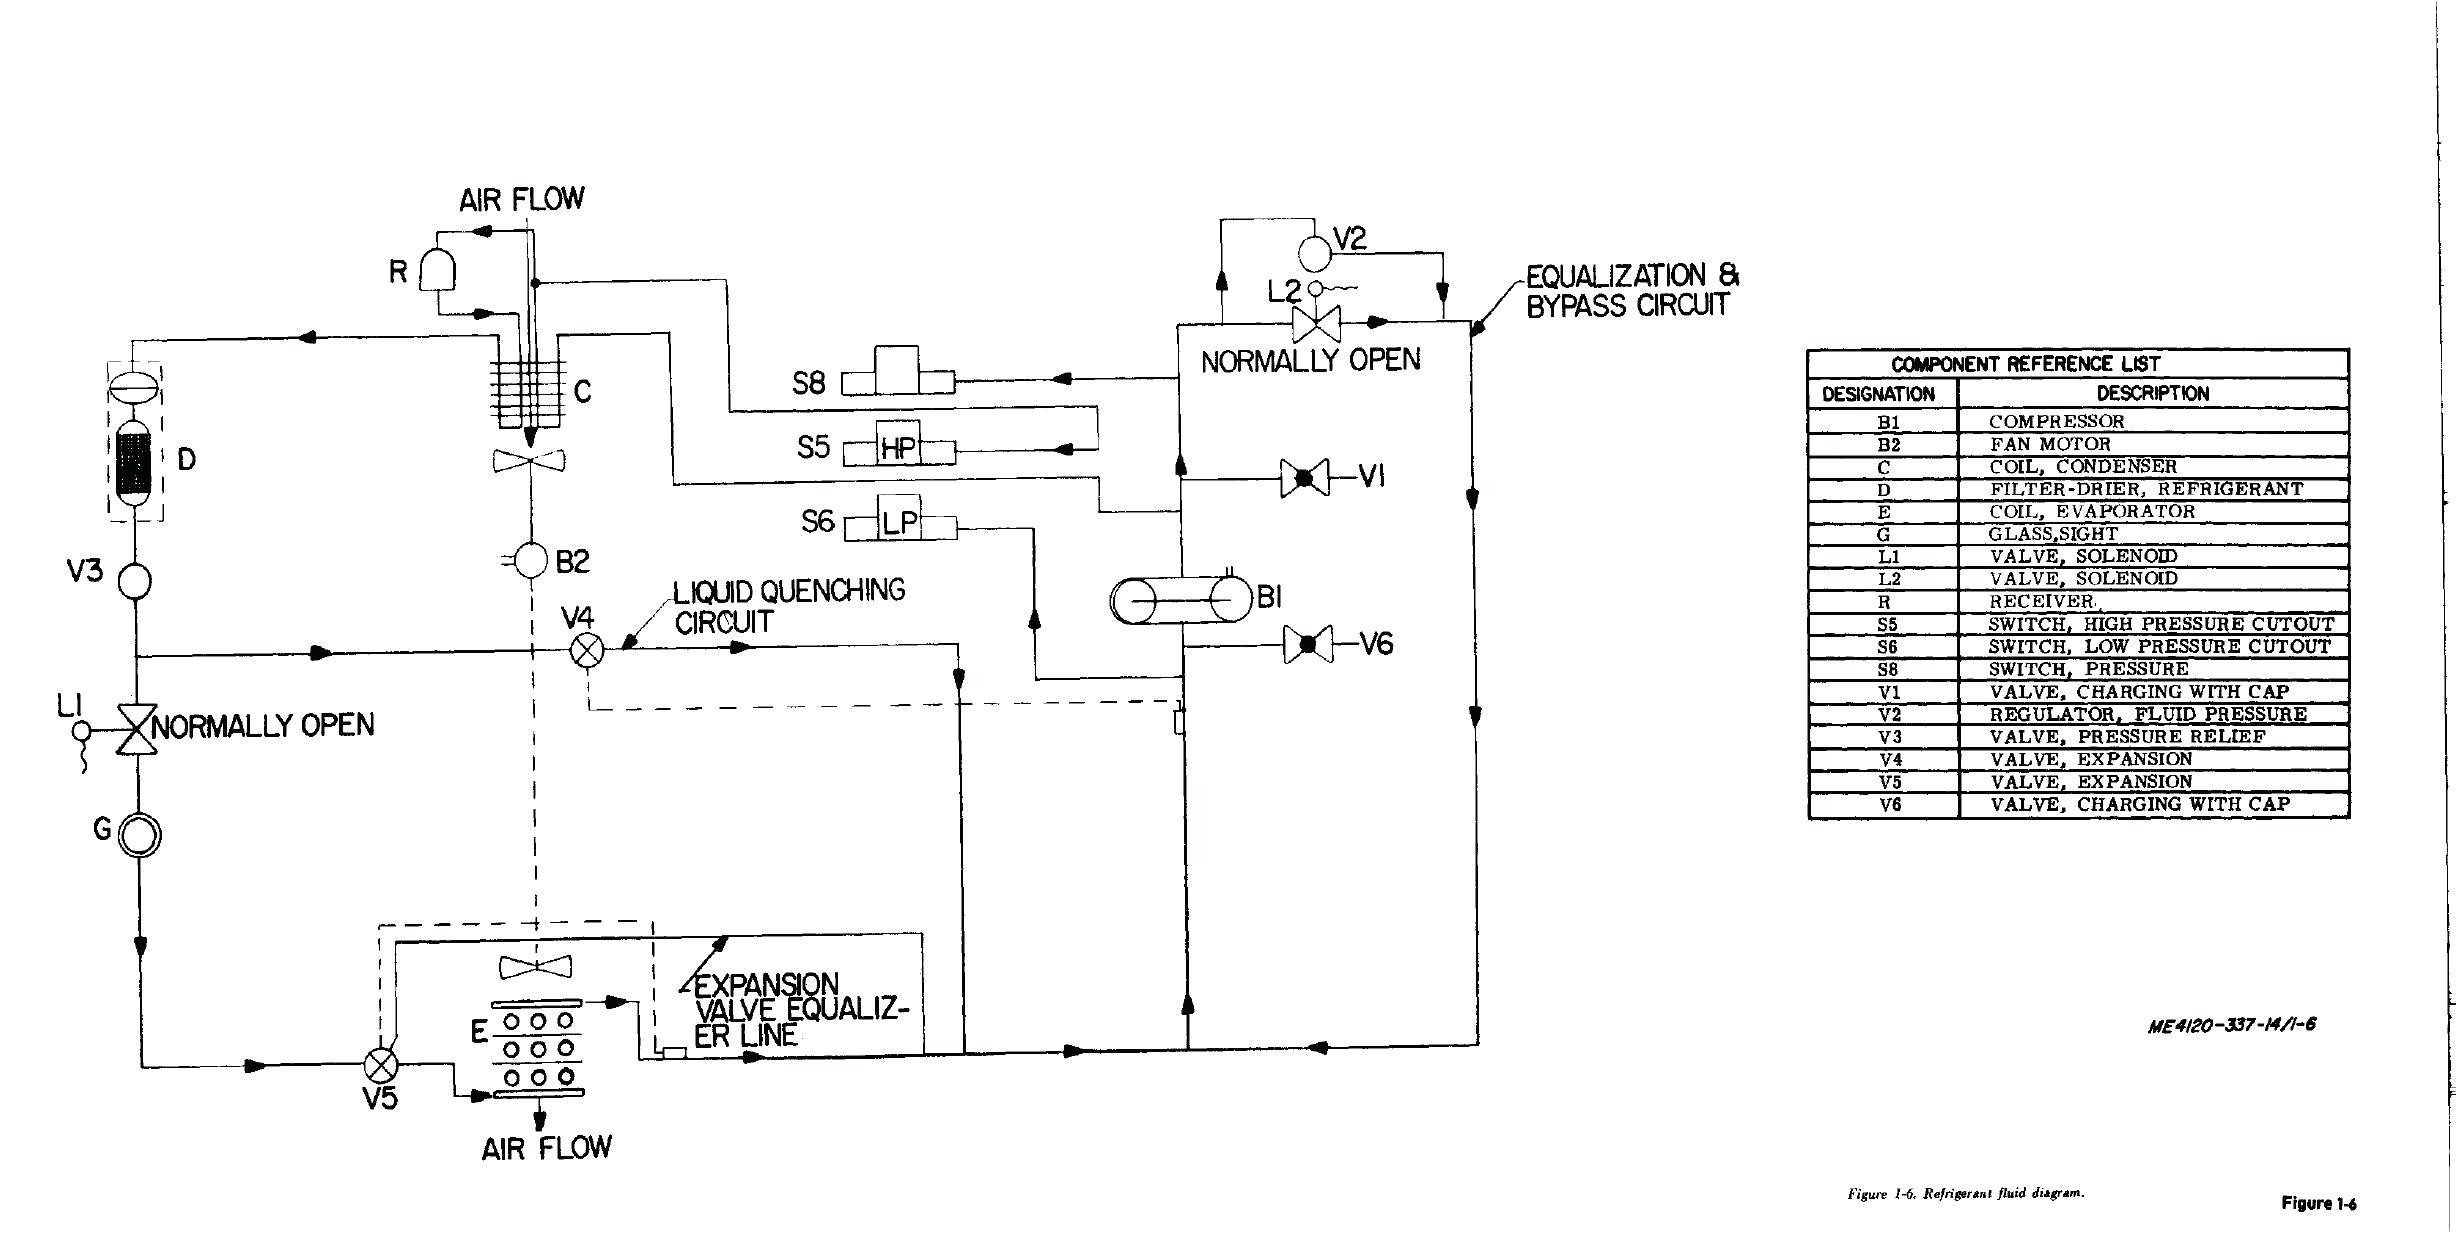 Diagram of auto ac system split air conditioner wiring diagram pdf diagram of auto ac system split air conditioner wiring diagram pdf central white simple asfbconference2016 Choice Image